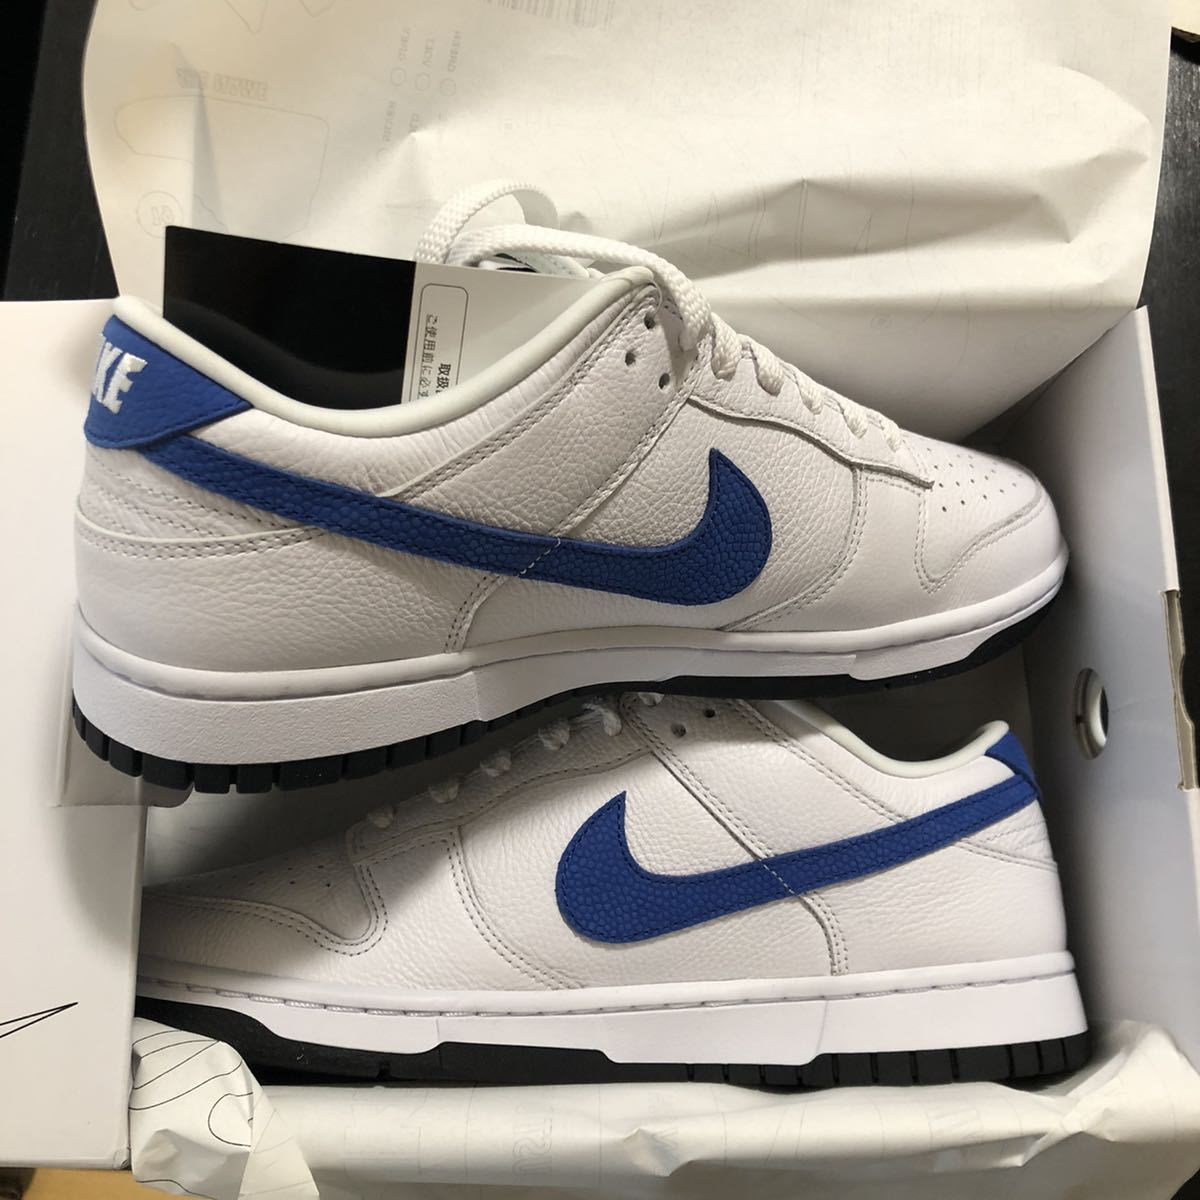 27.5cm Nike Dunk Low 365 By You US9.5 新品未使用 ナイキ ダンク ロー バイ ユー